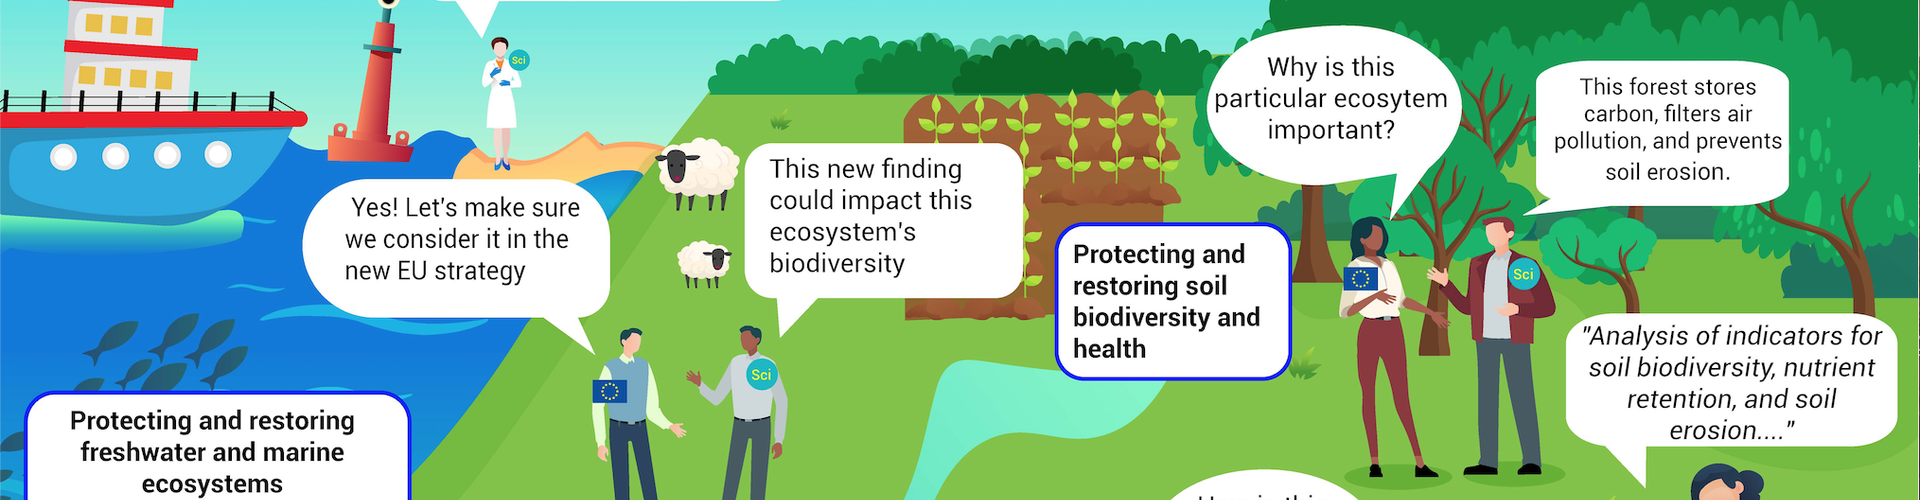 How geoscience can support the EU's biodiversity targets (Credit: alexandra8796@gmail.com)